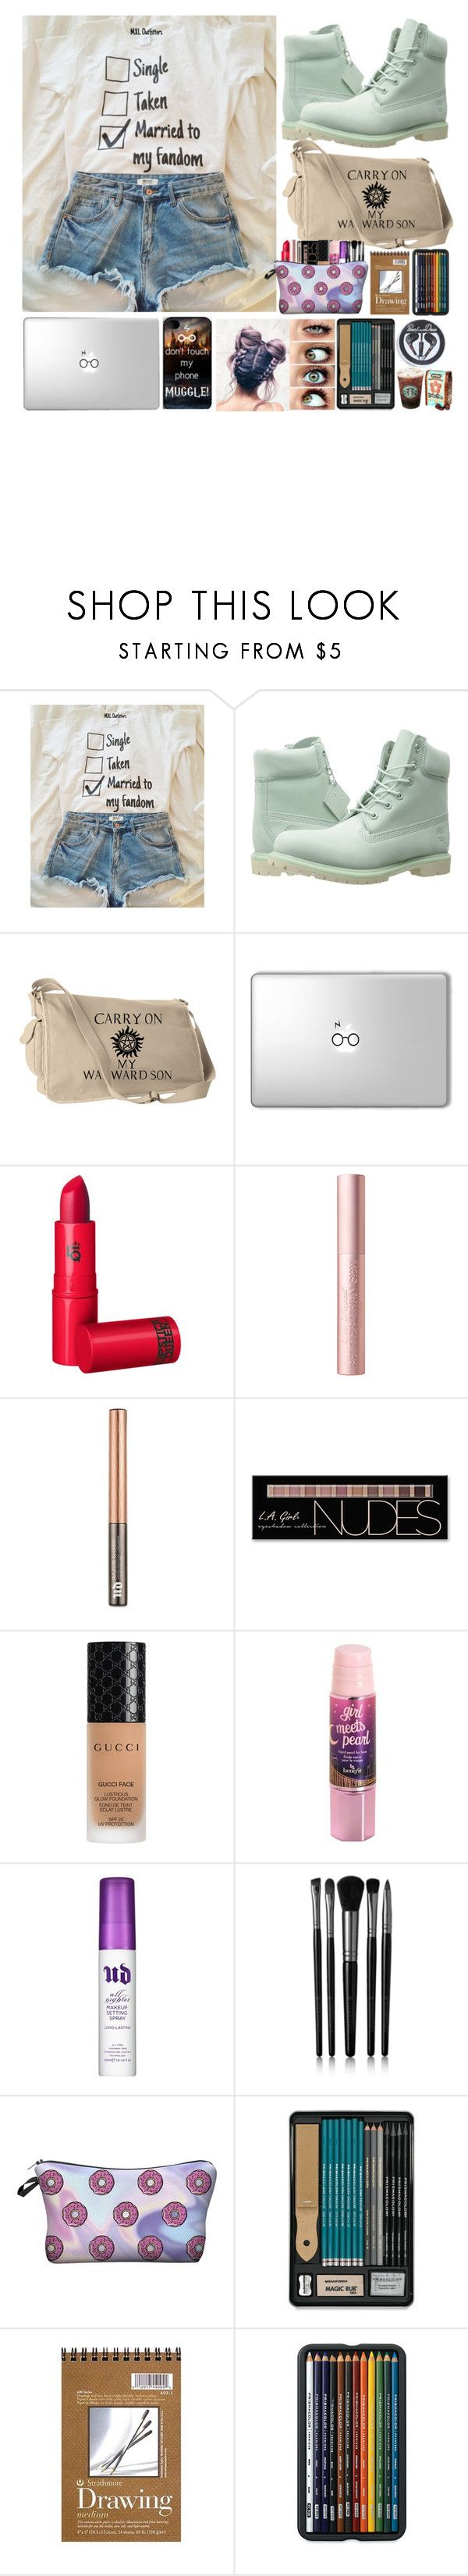 """Coffee Shop"" by cockles ❤ liked on Polyvore featuring Timberland, Lipstick Queen, Urban Decay, Charlotte Russe, Gucci, Benefit, Illamasqua, Hot Topic and plus size clothing"